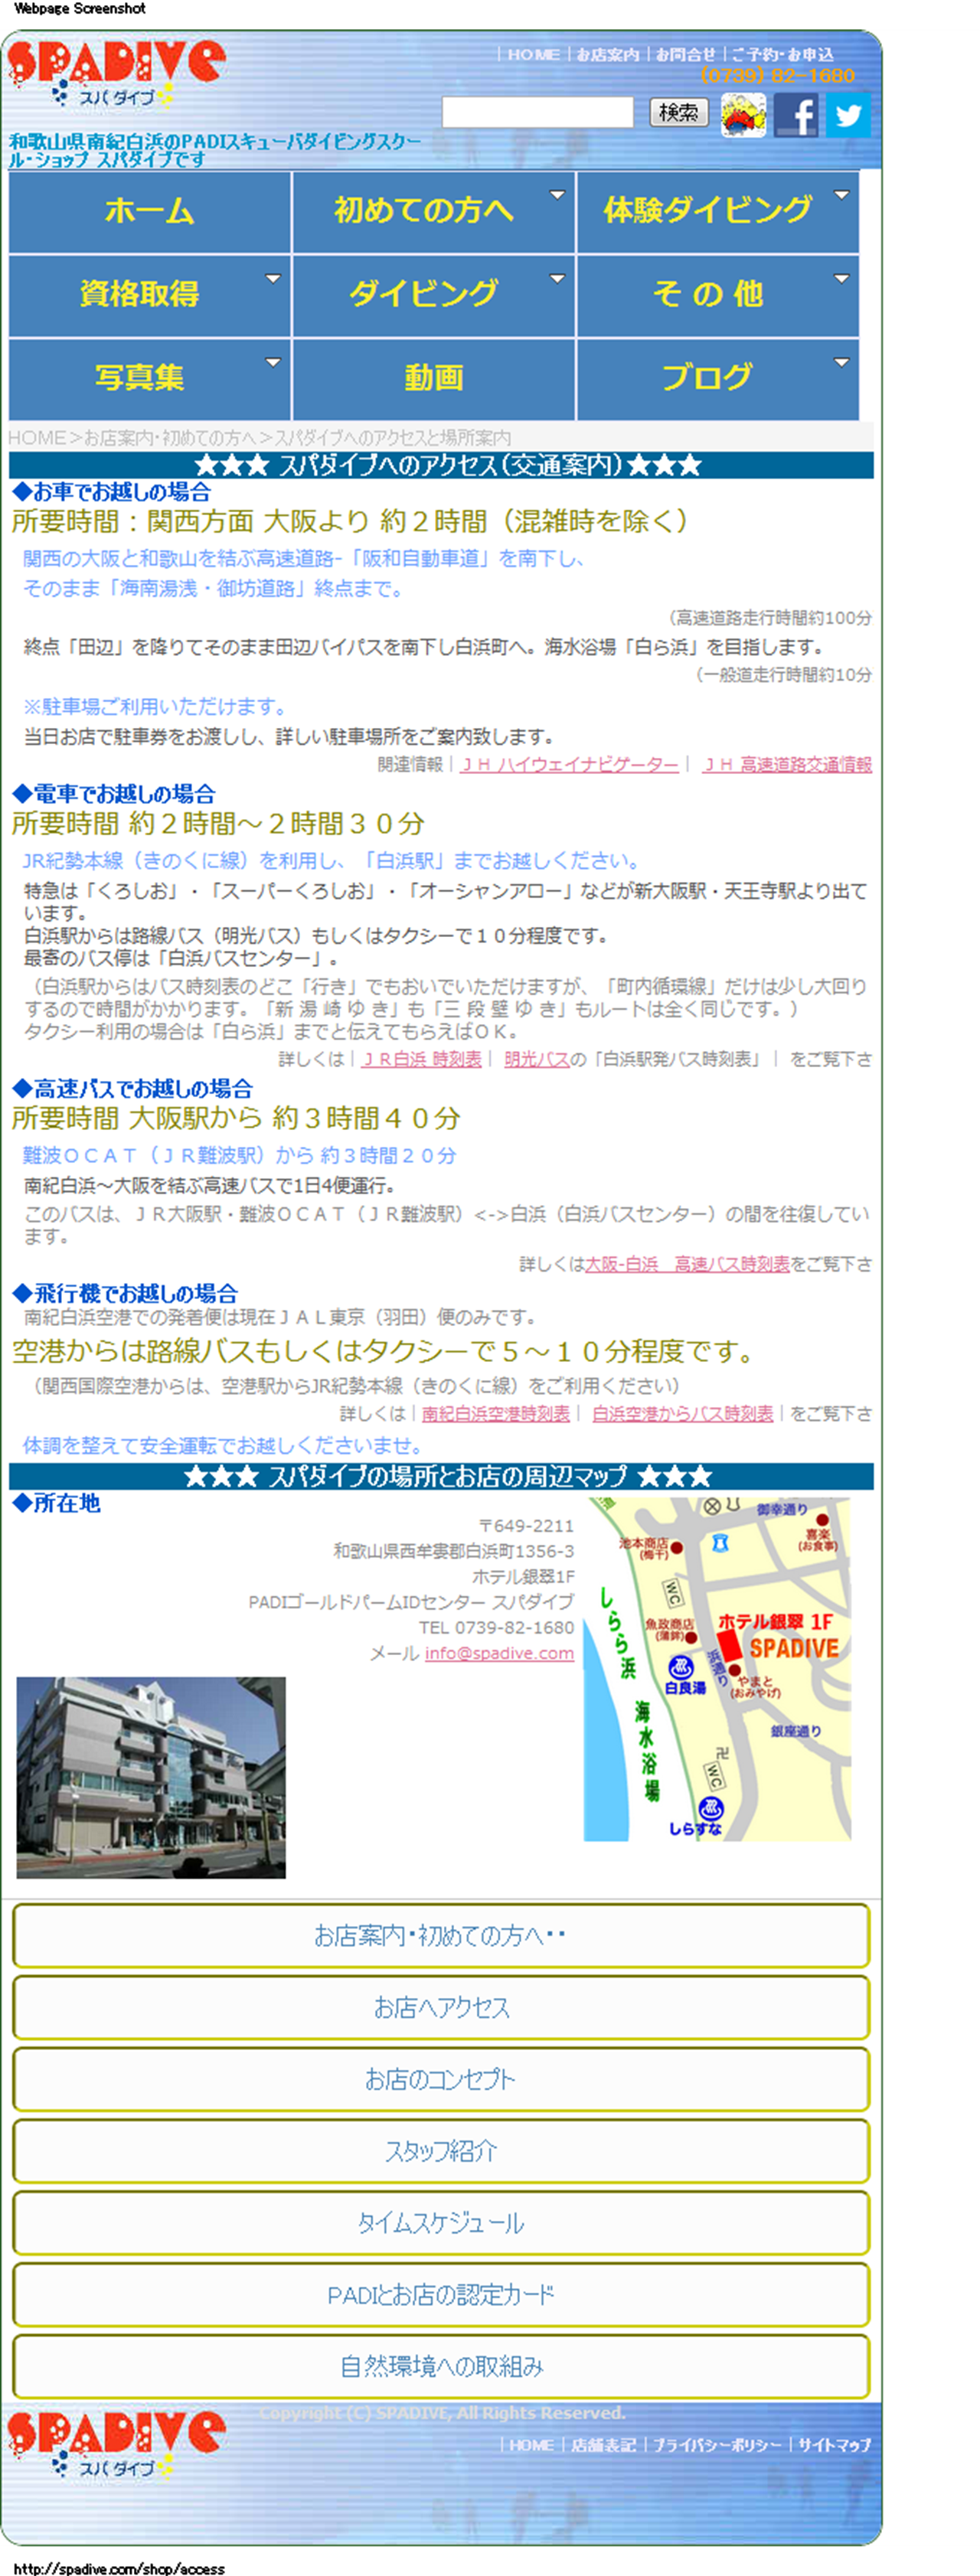 20120705144038.png